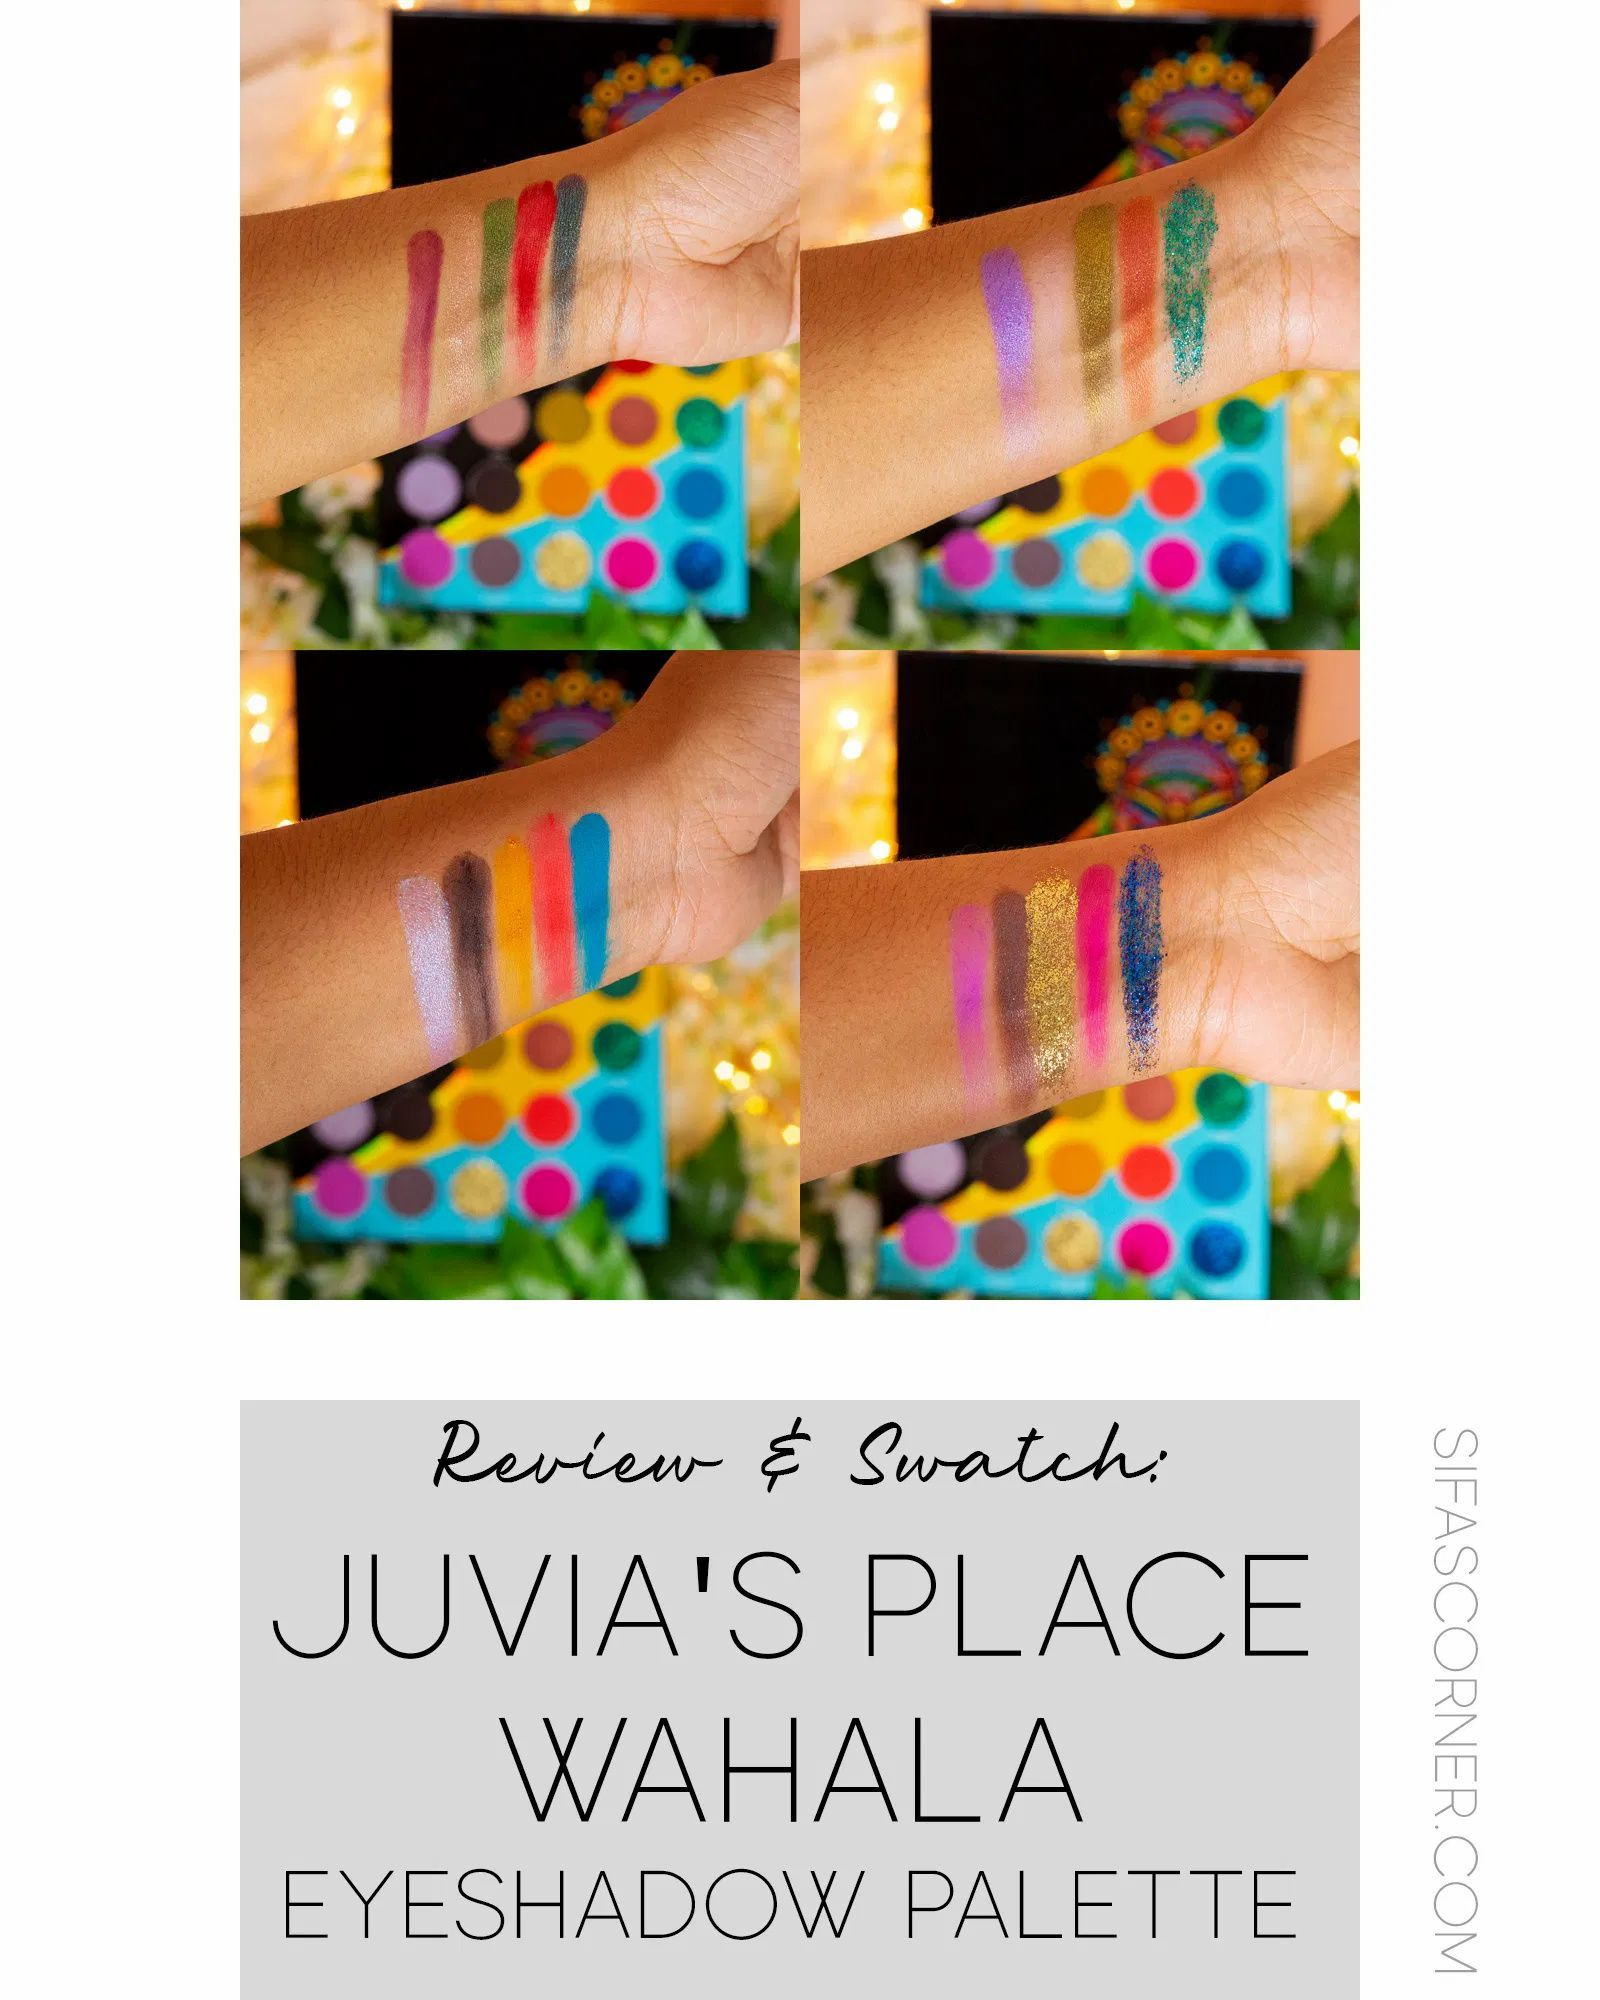 Juvia's Place Wahala Eyeshadow Palette Review and Swatch